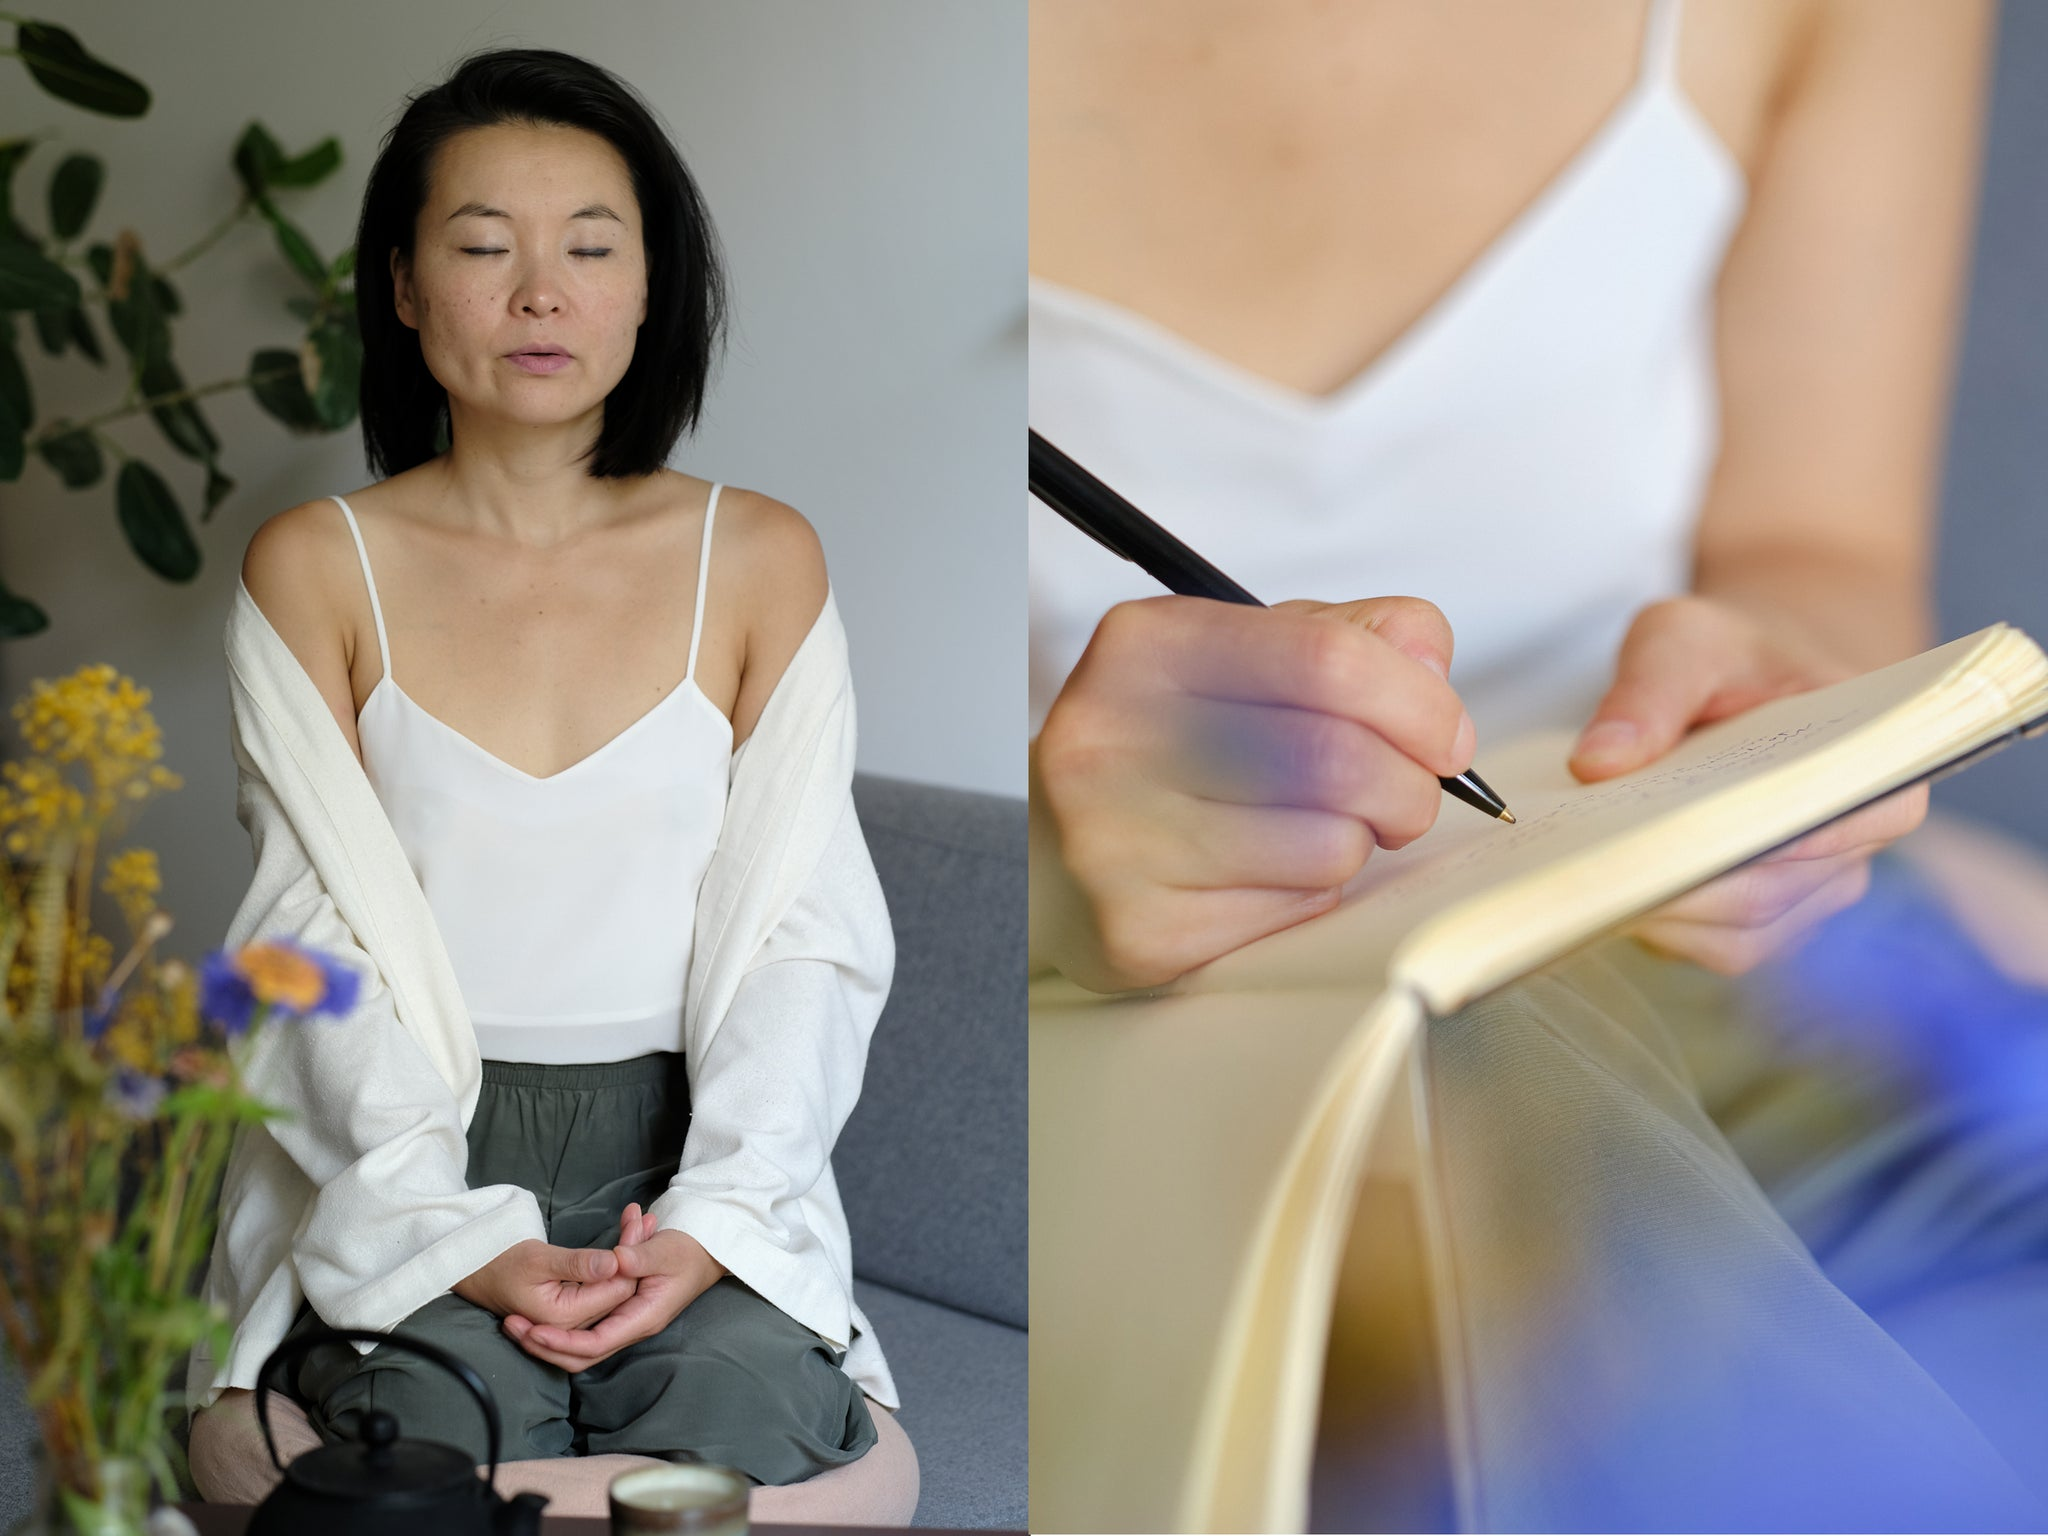 Sun Mee Martin practicing mediation, breath work and journaling as self care